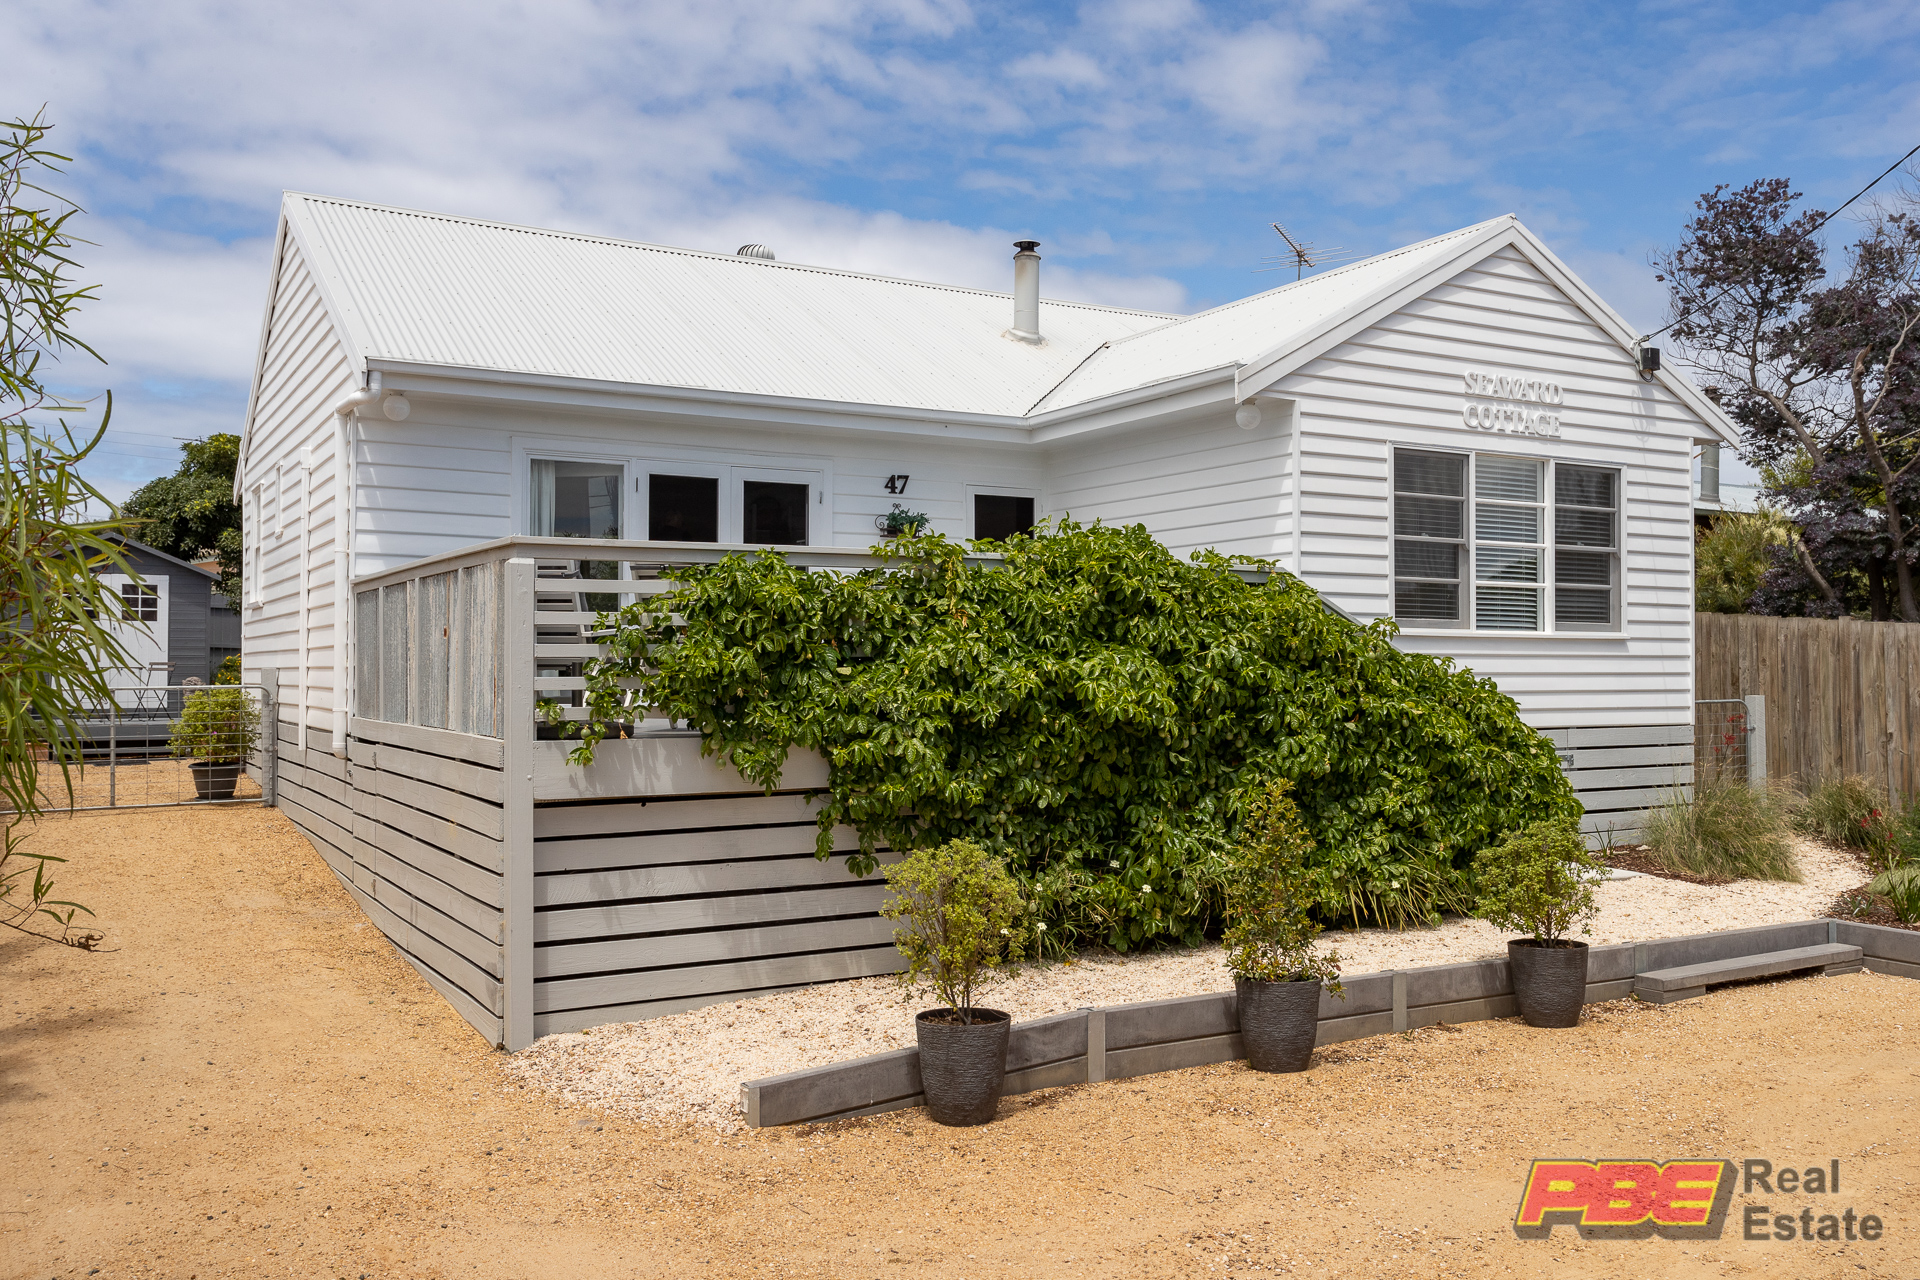 47 SEAWARD DRIVE CAPE PATERSON